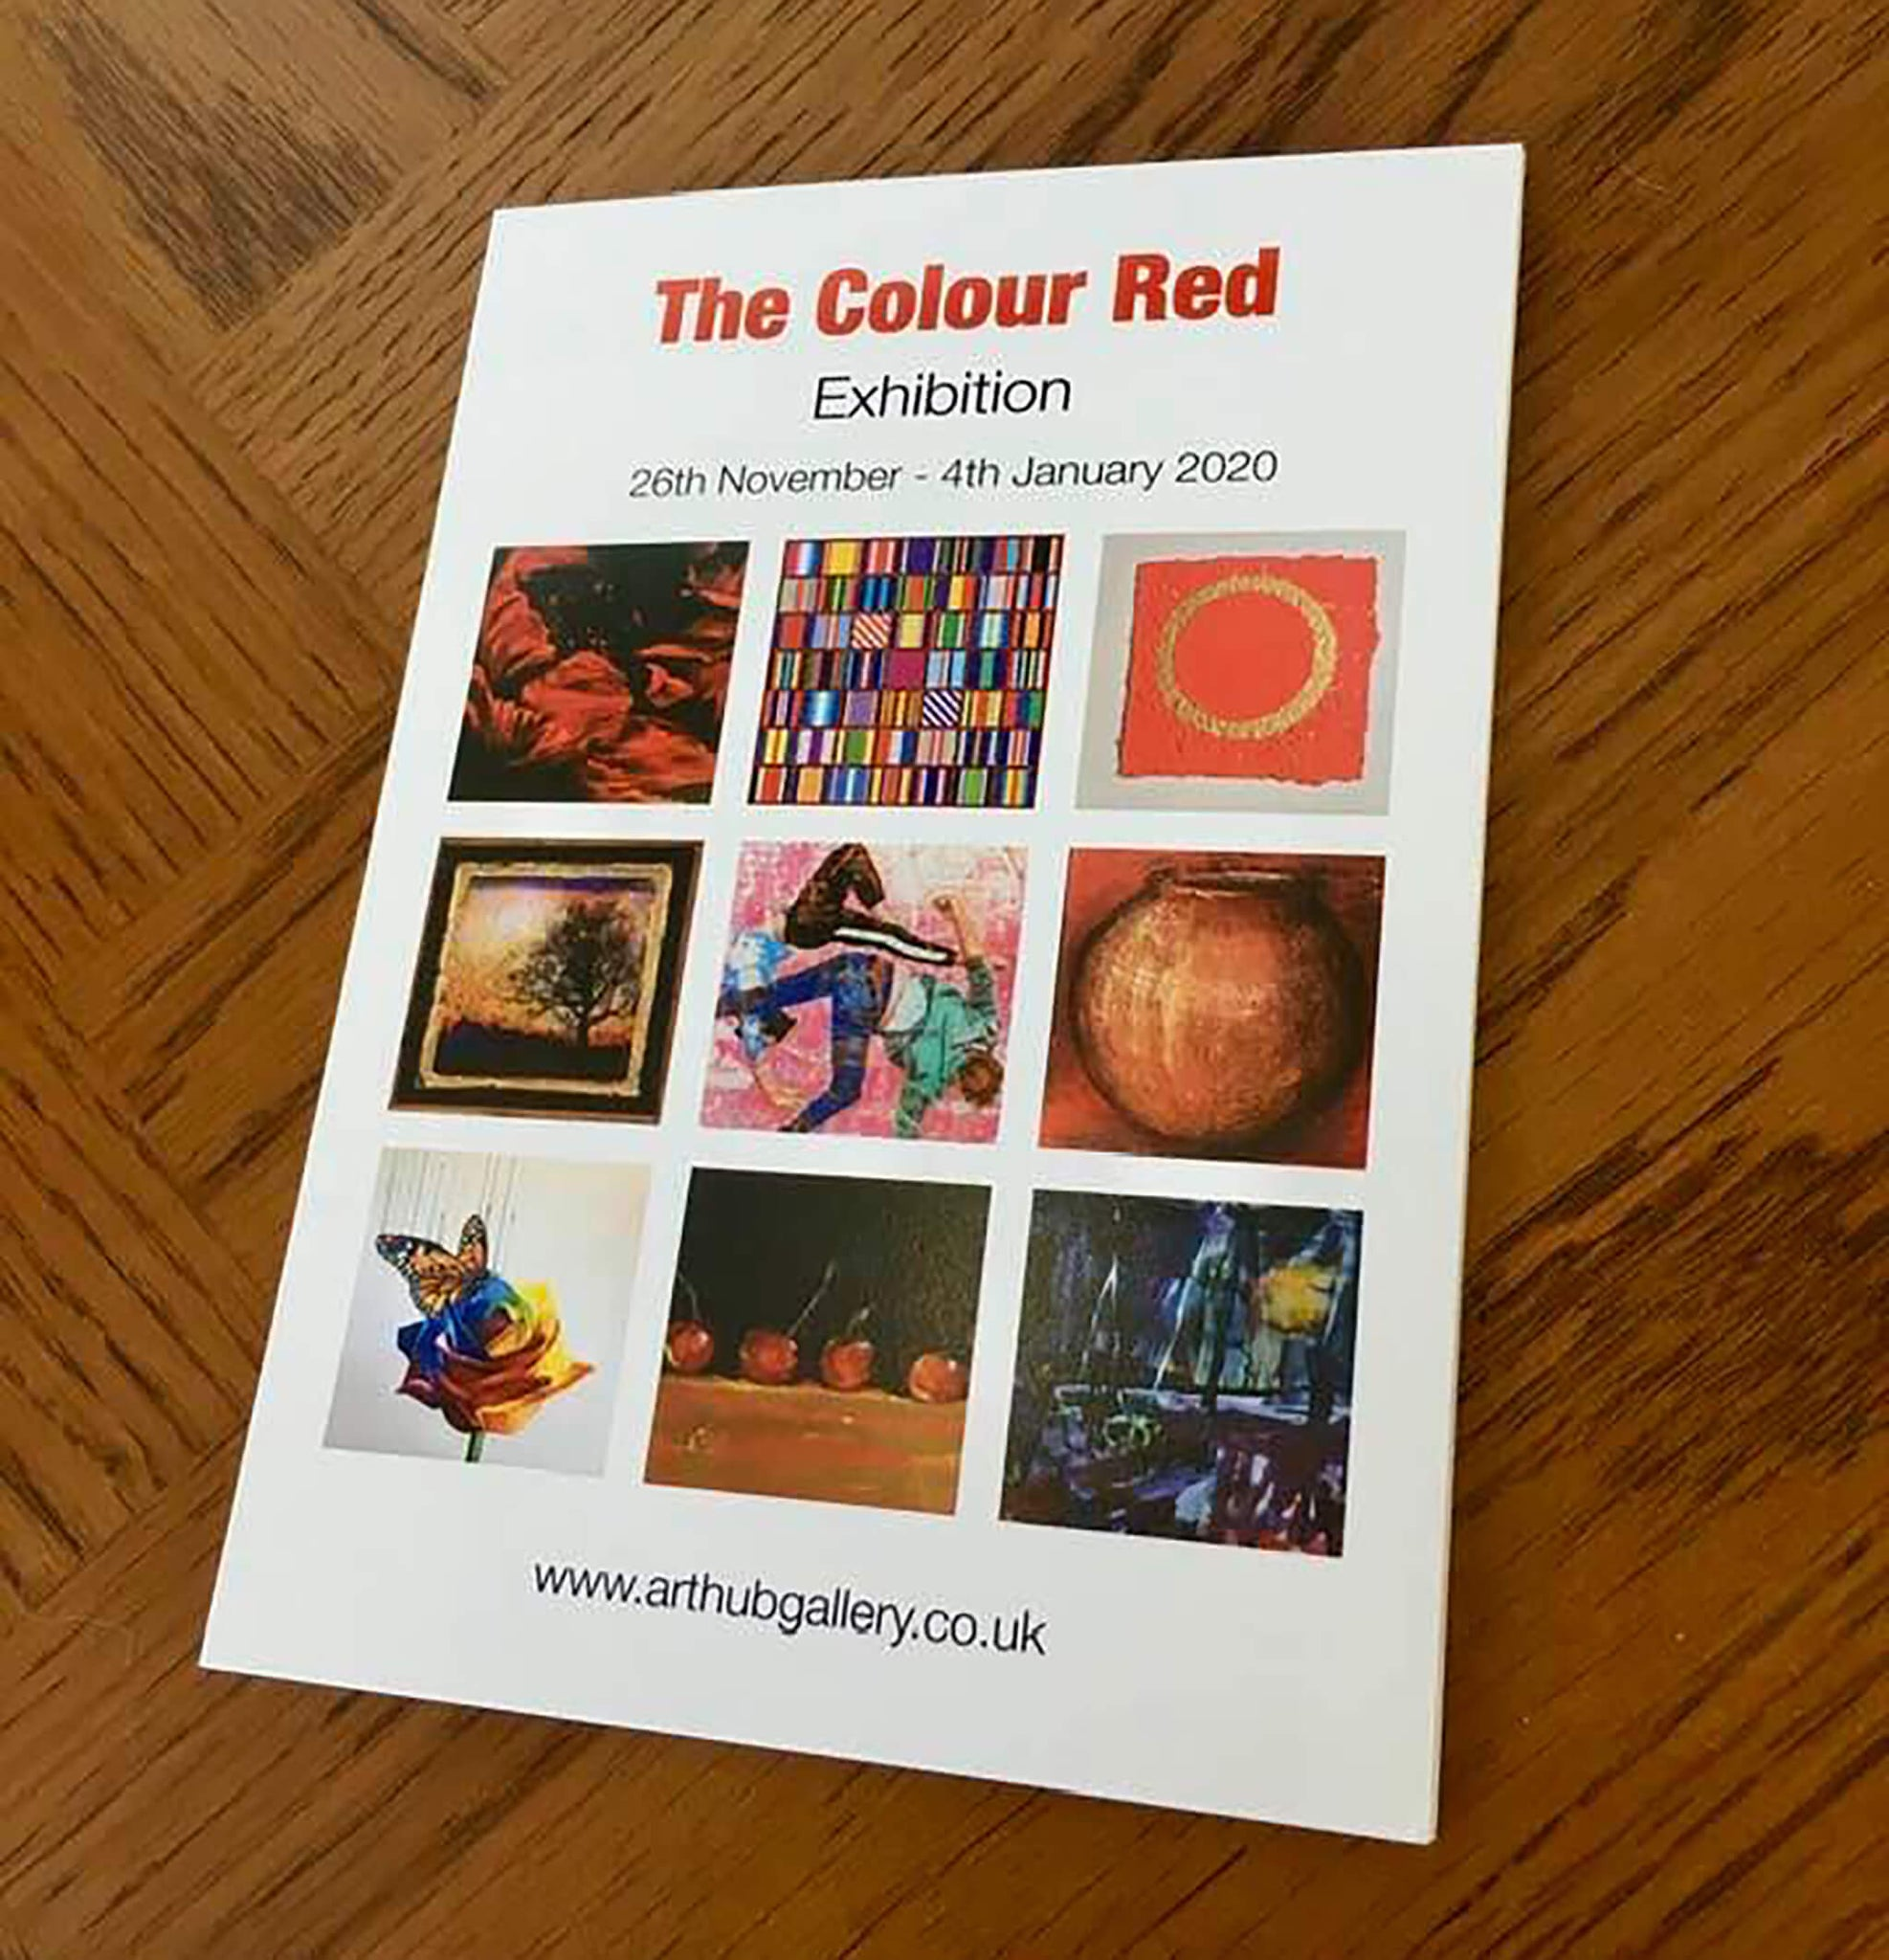 The Colour Red exhibition at The Art Hub in Tunbridge Wells including Stella Tooth's acrobat artworks.